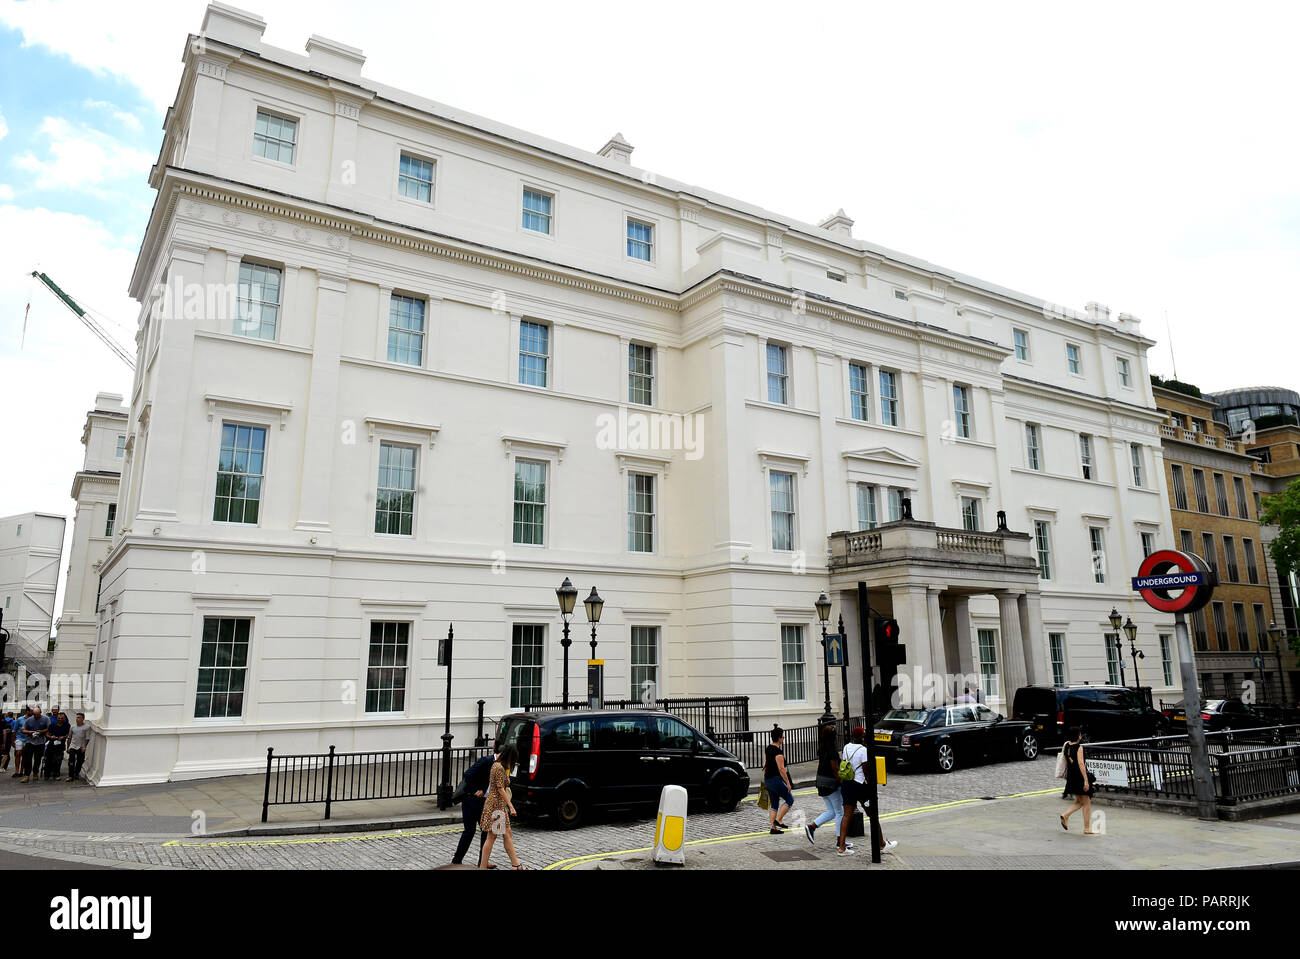 The Lanesborough Hotel in London. - Stock Image